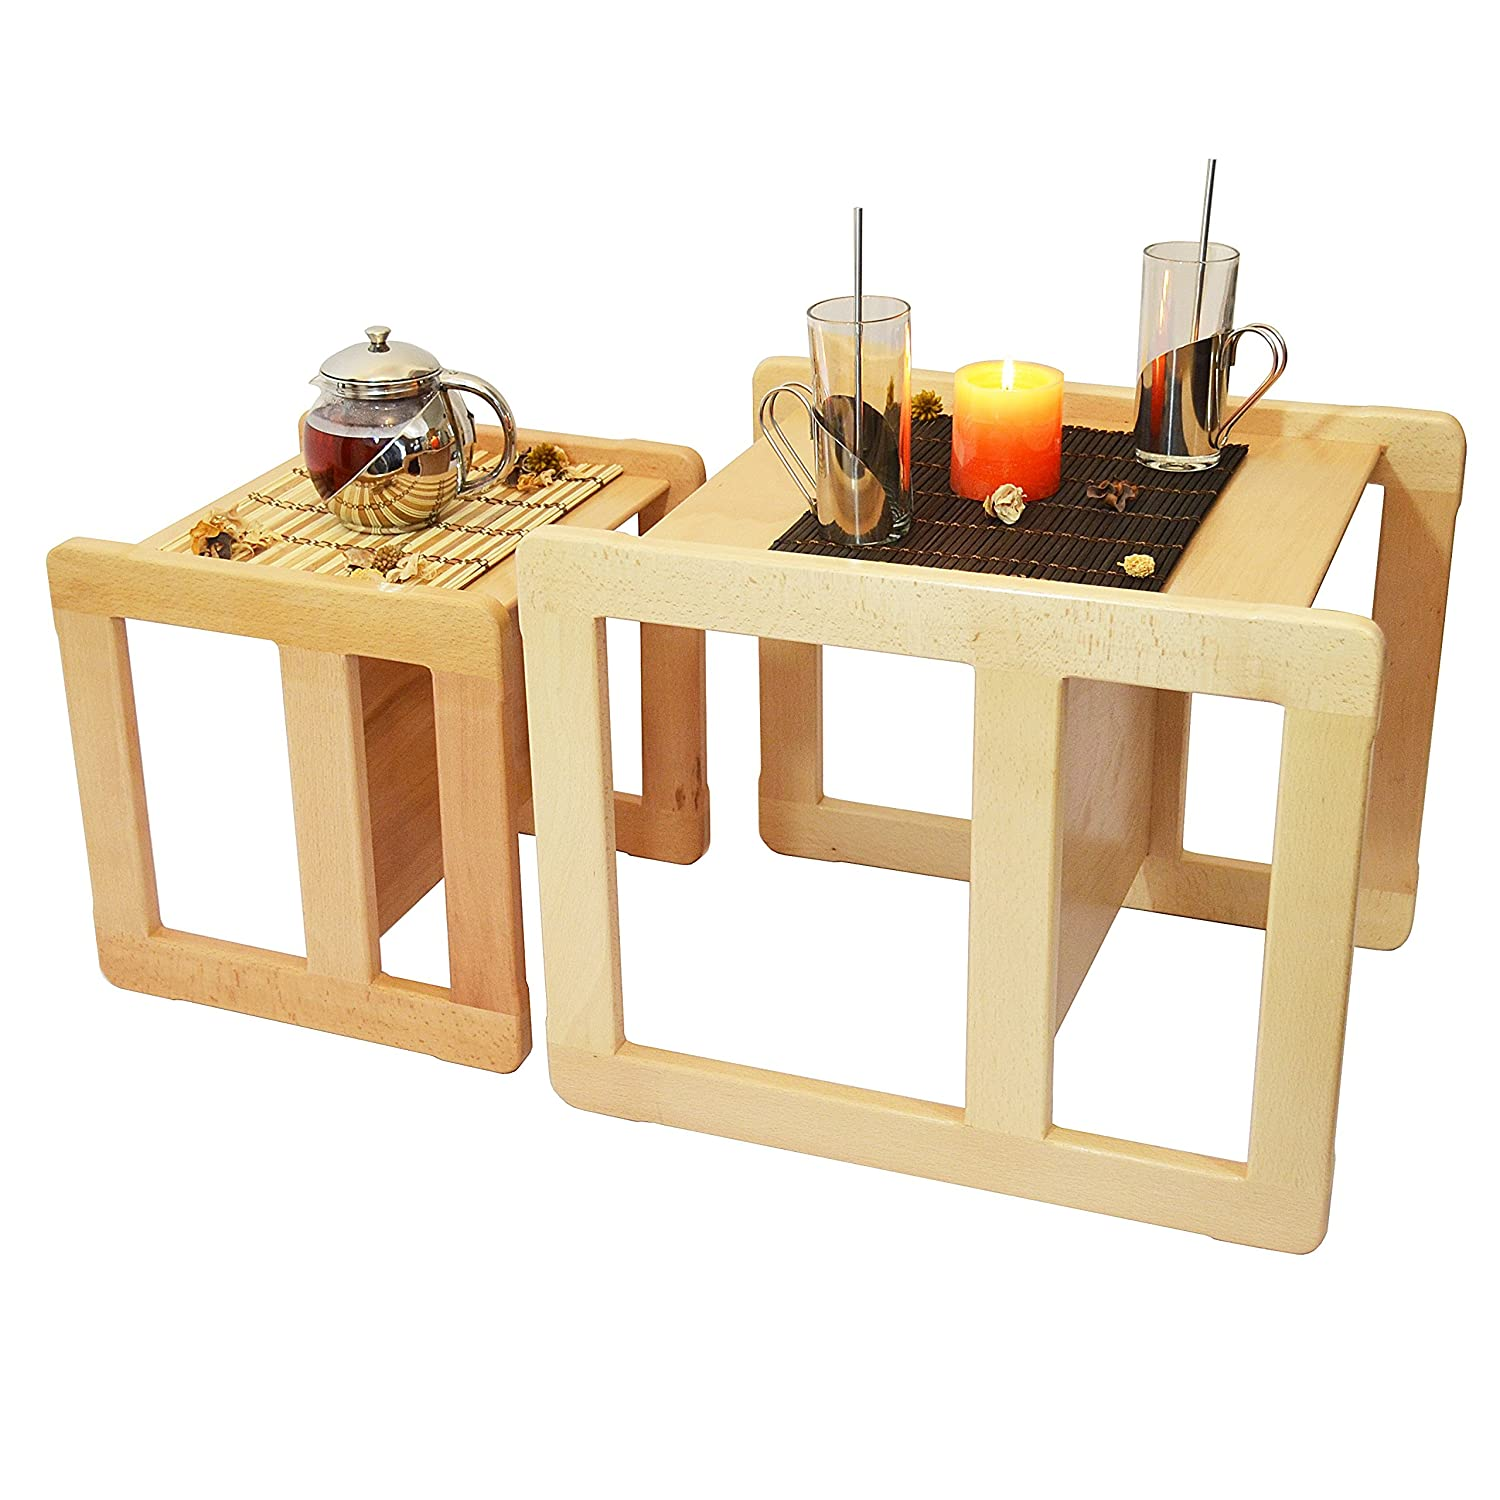 3 in 1 Children s Multifunctional Furniture Set of 2 e Small